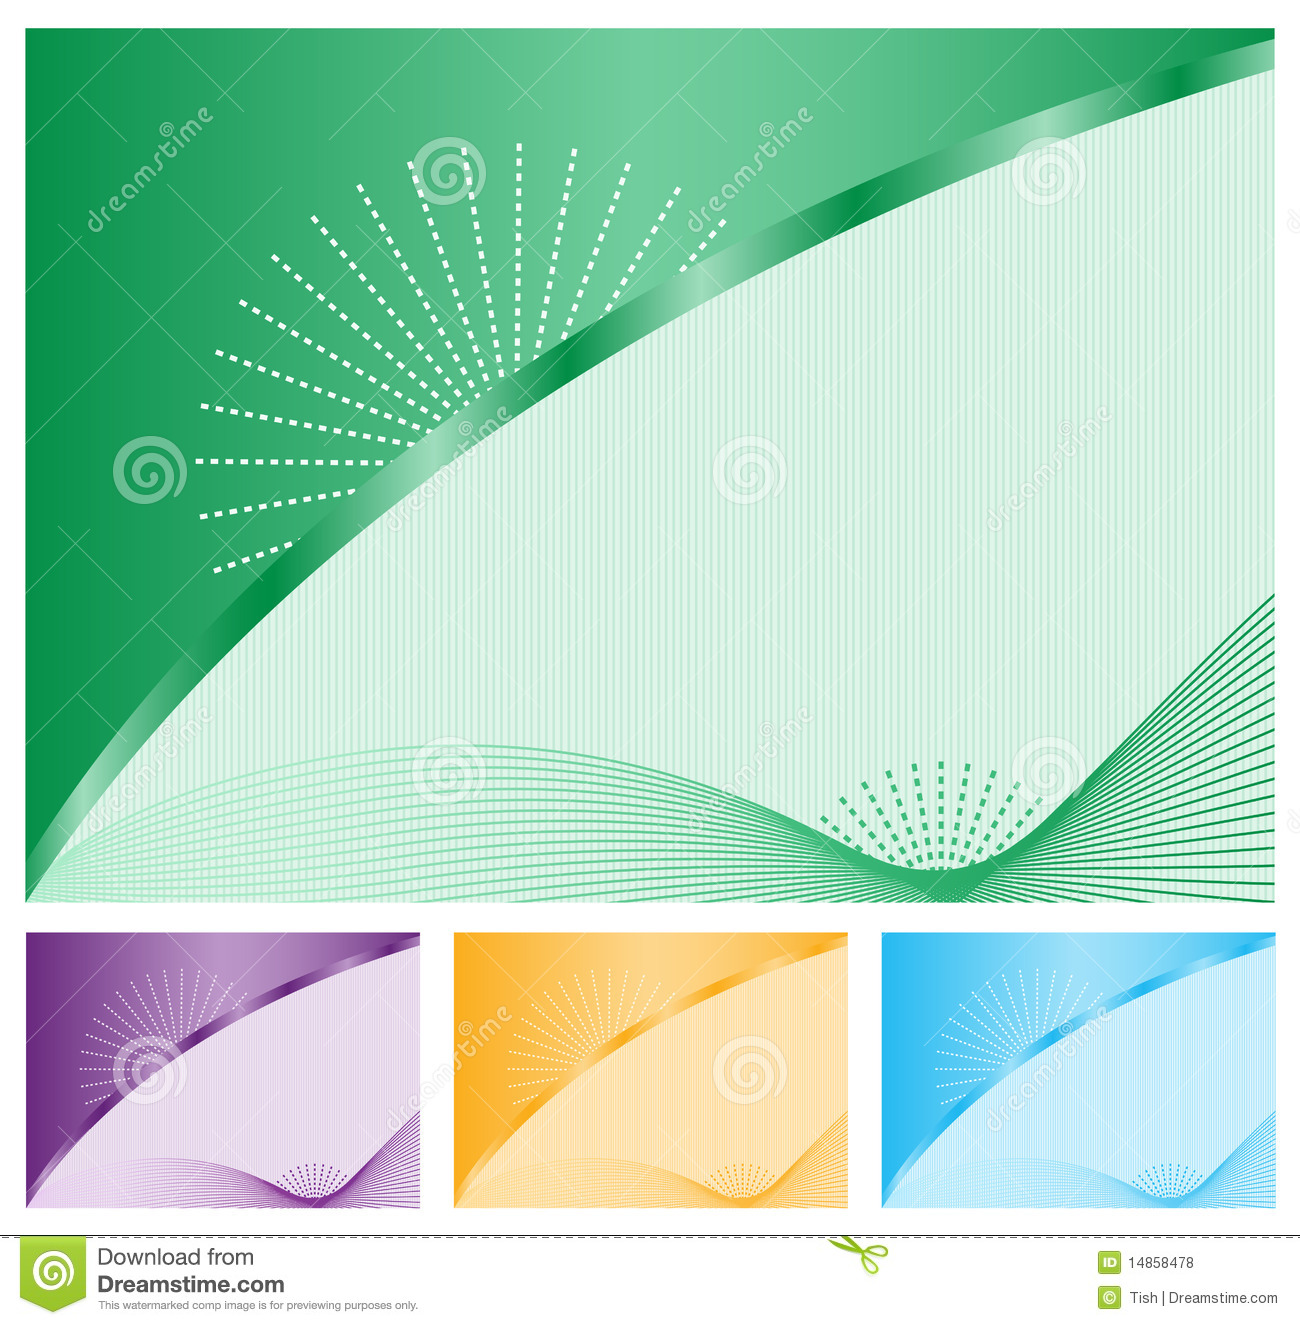 Abstract backgrounds set of four